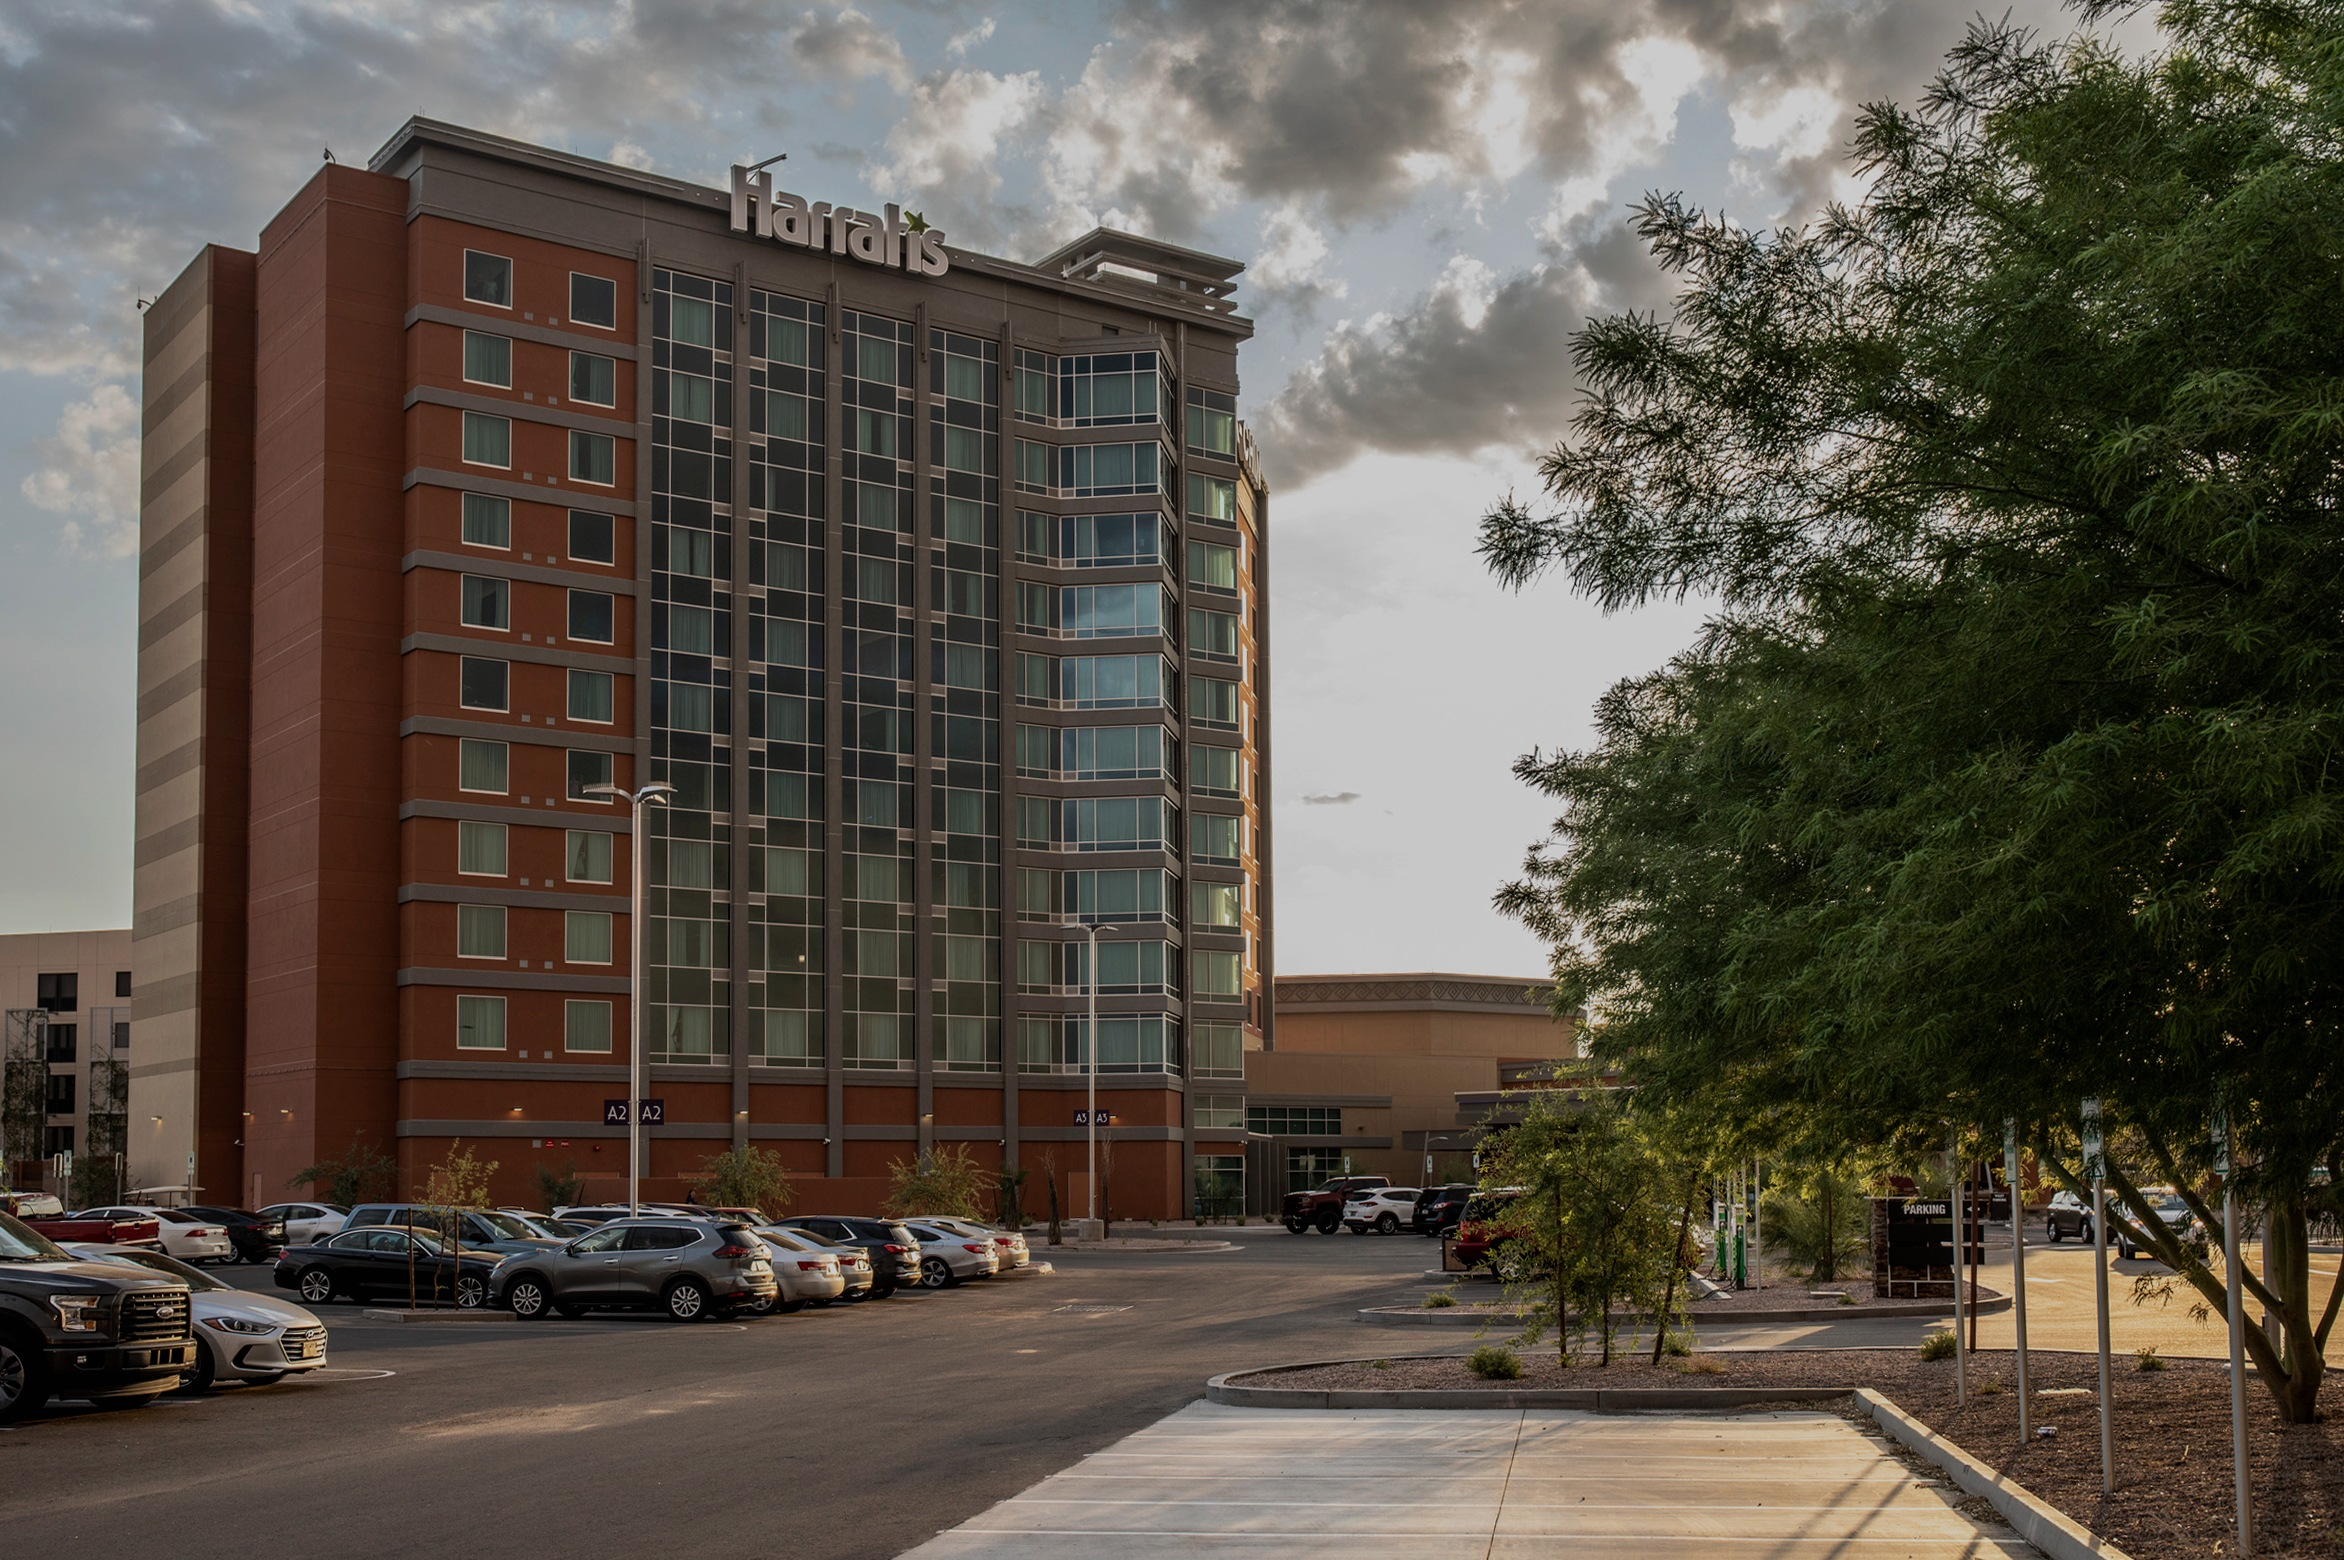 Harrah's Ak-Chin Hotel and Casino Expansion